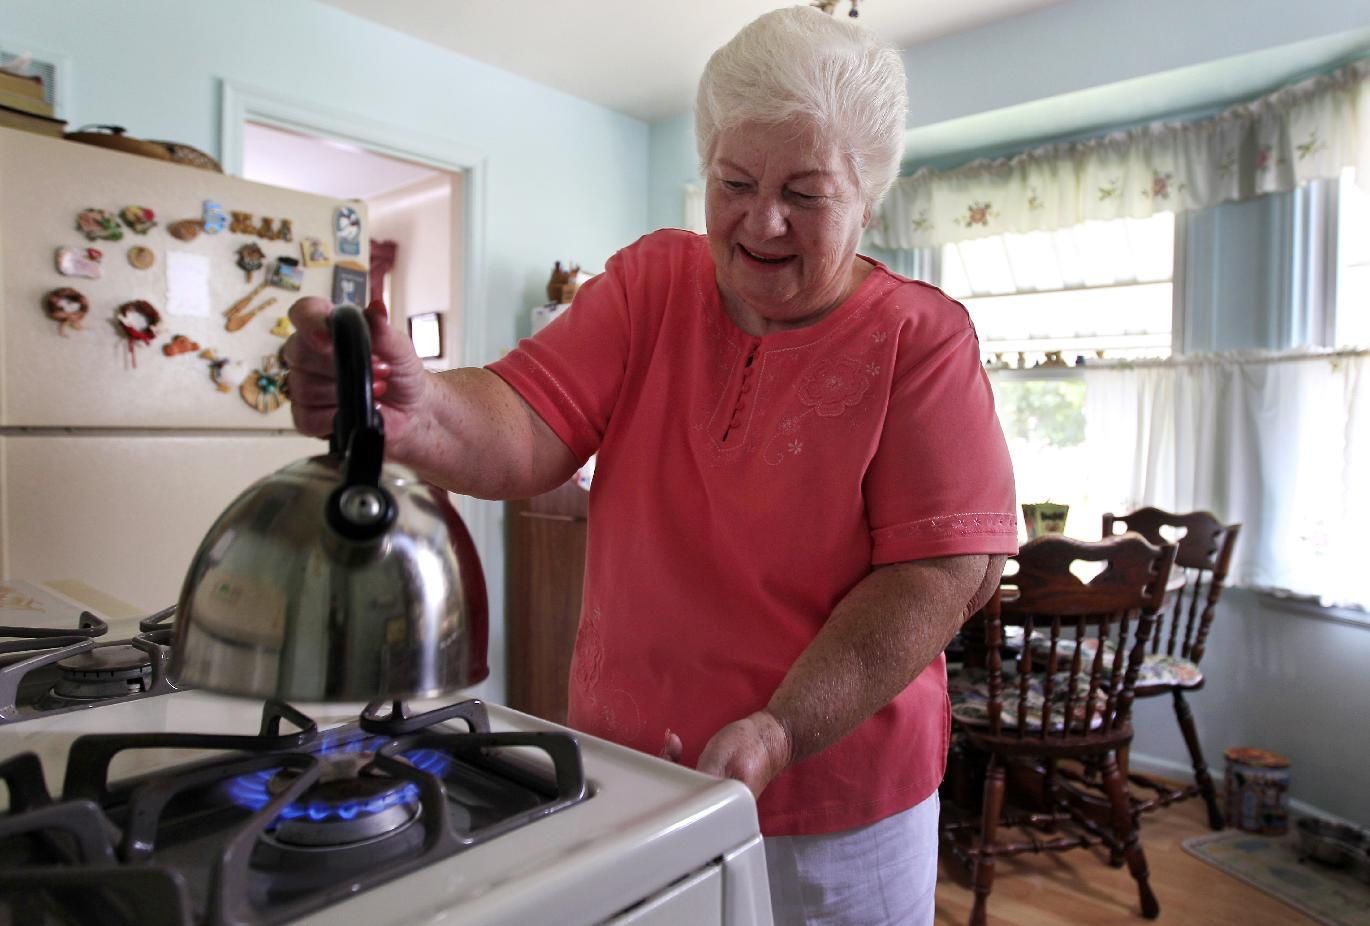 "In this photo taken July 26, 2012, Marge Youngs adjusts the flame on her stove at her home in Toledo, Ohio. When given a choice on how to fix Social Security's serious long-term financial problems, 53 percent of adults said they would rather raise taxes than cut benefits for future generations, according to an Associated Press-GfK poll. ""Right now, it seems like we're taxed so much, but if that would be the only way to go, I guess I'd have to be for it to preserve it,"" said Youngs, a 77-year-old widow. ""It's extremely important to me. It's most of my income."" (AP Photo/Carlos Osorio)"